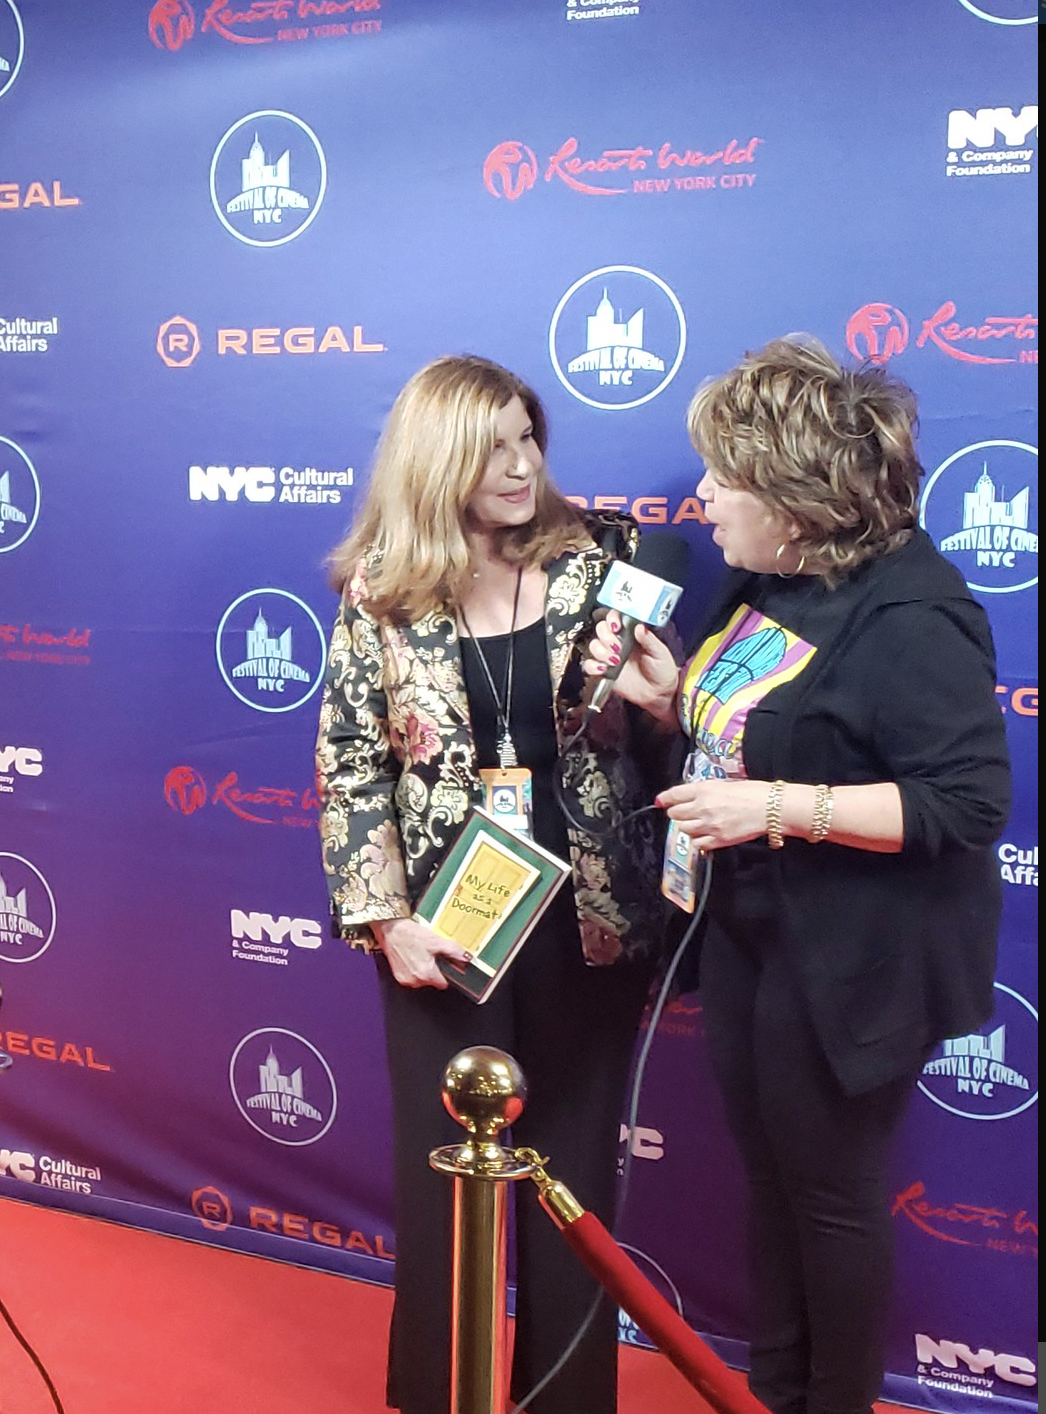 Interviewed on the red carpet at Festival of Cinema NYC. Nominated for BEST TV/Web series. Interviewed on the red carpet at Festival of Cinema NYC. Nominated for BEST TV/Web series.